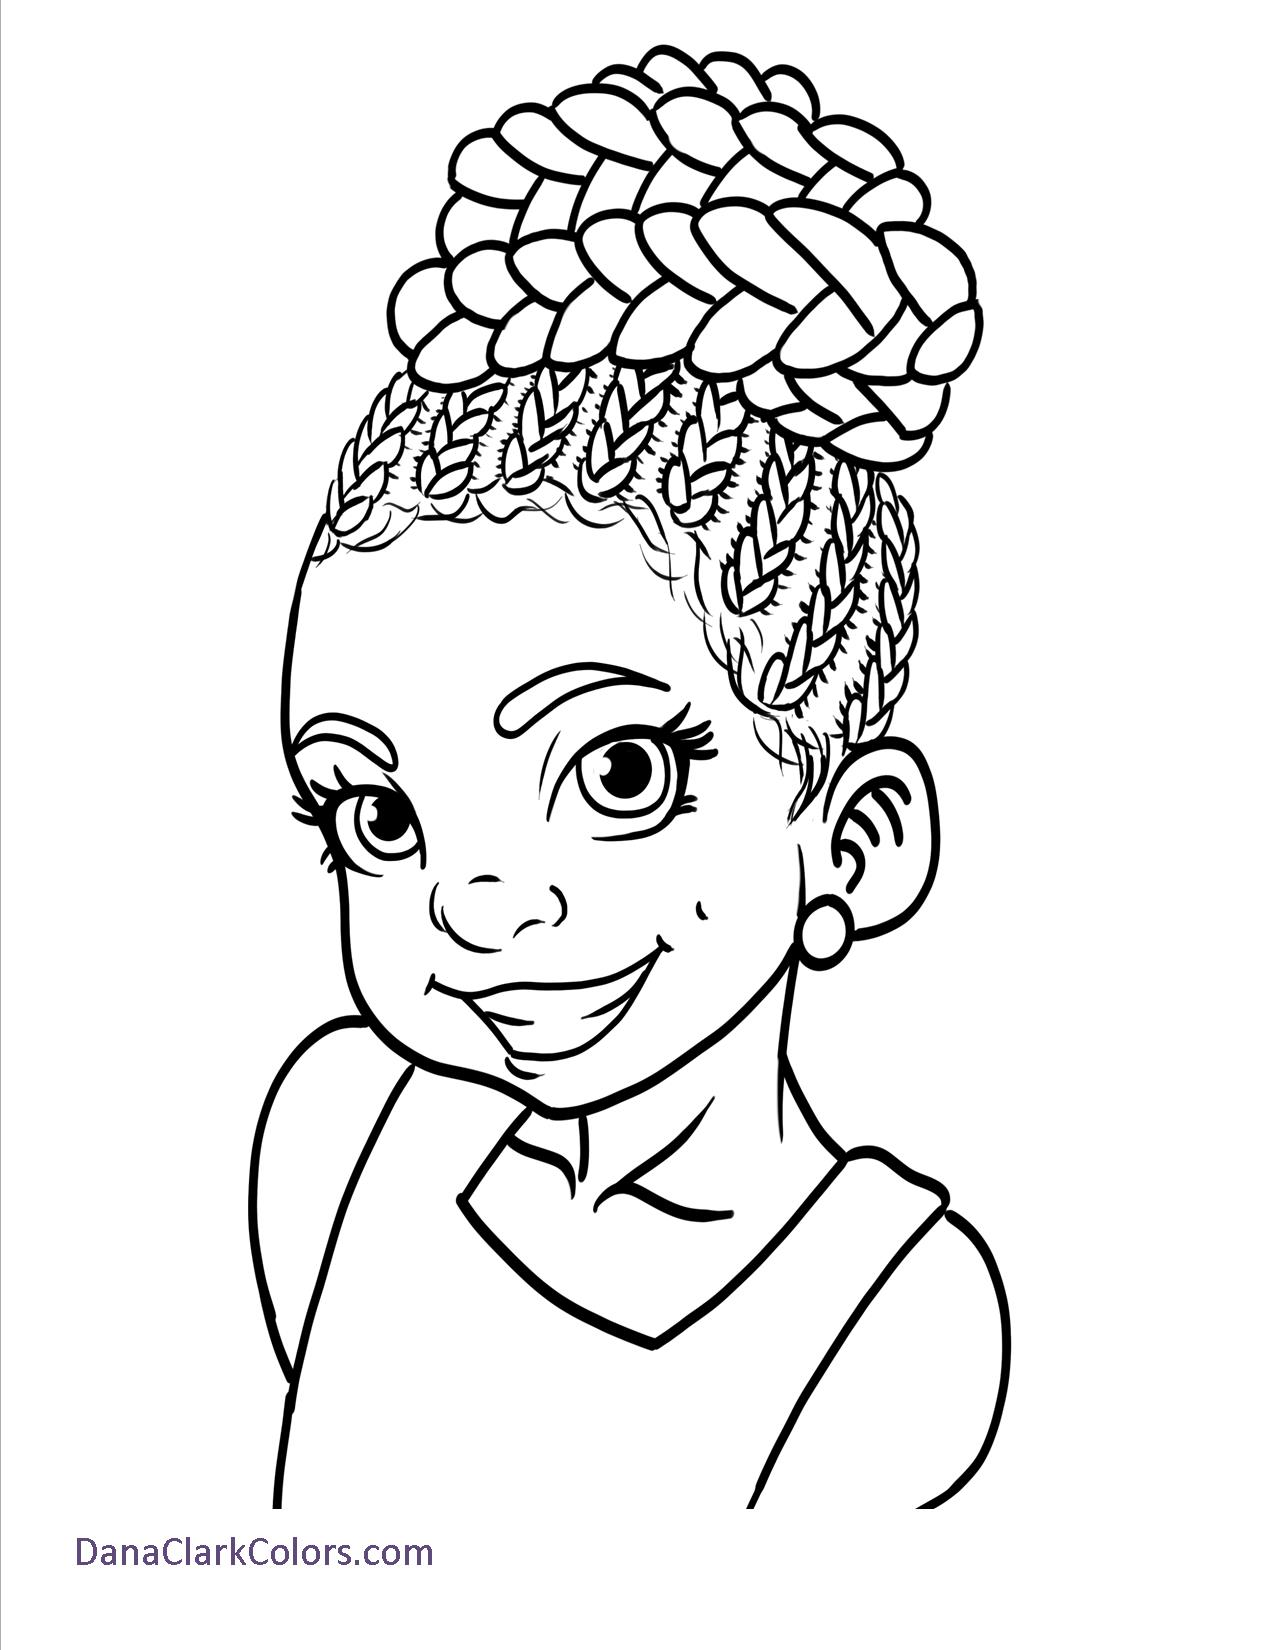 1275x1650 African American Coloring Pages Free Danaclarkcolors Com Within